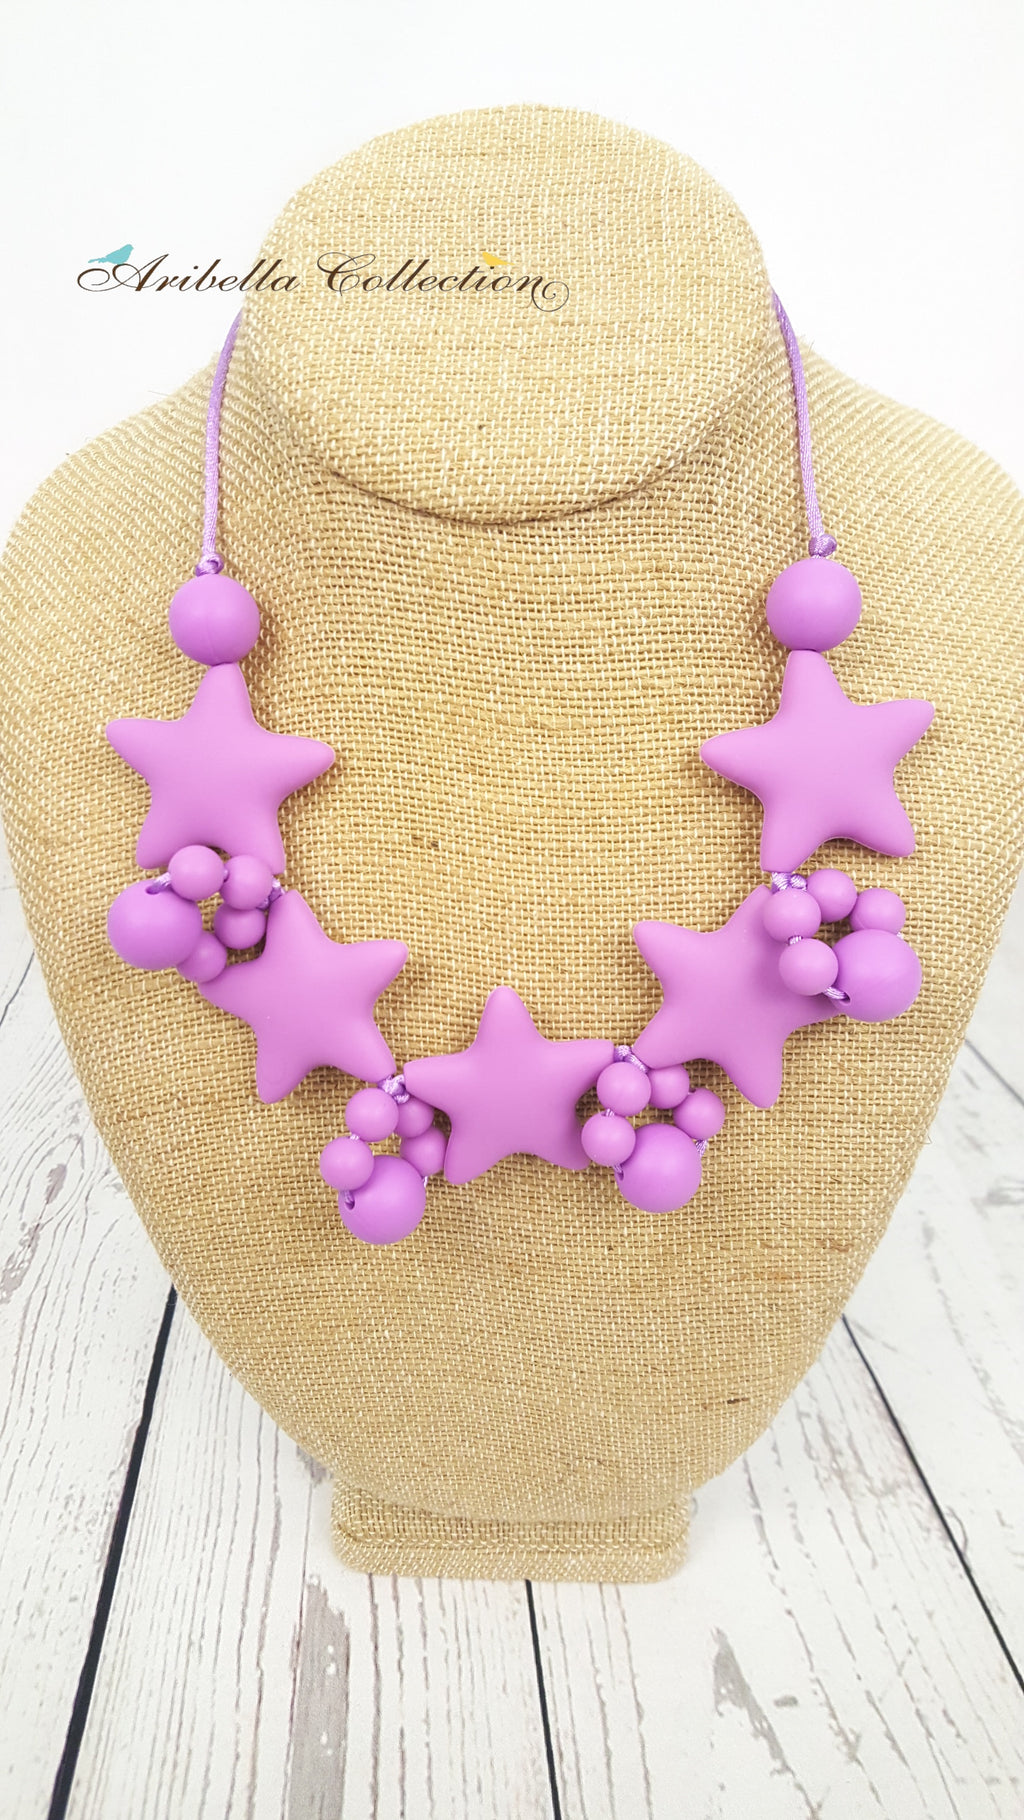 Silicone Necklace - Purple - Aribella Collection